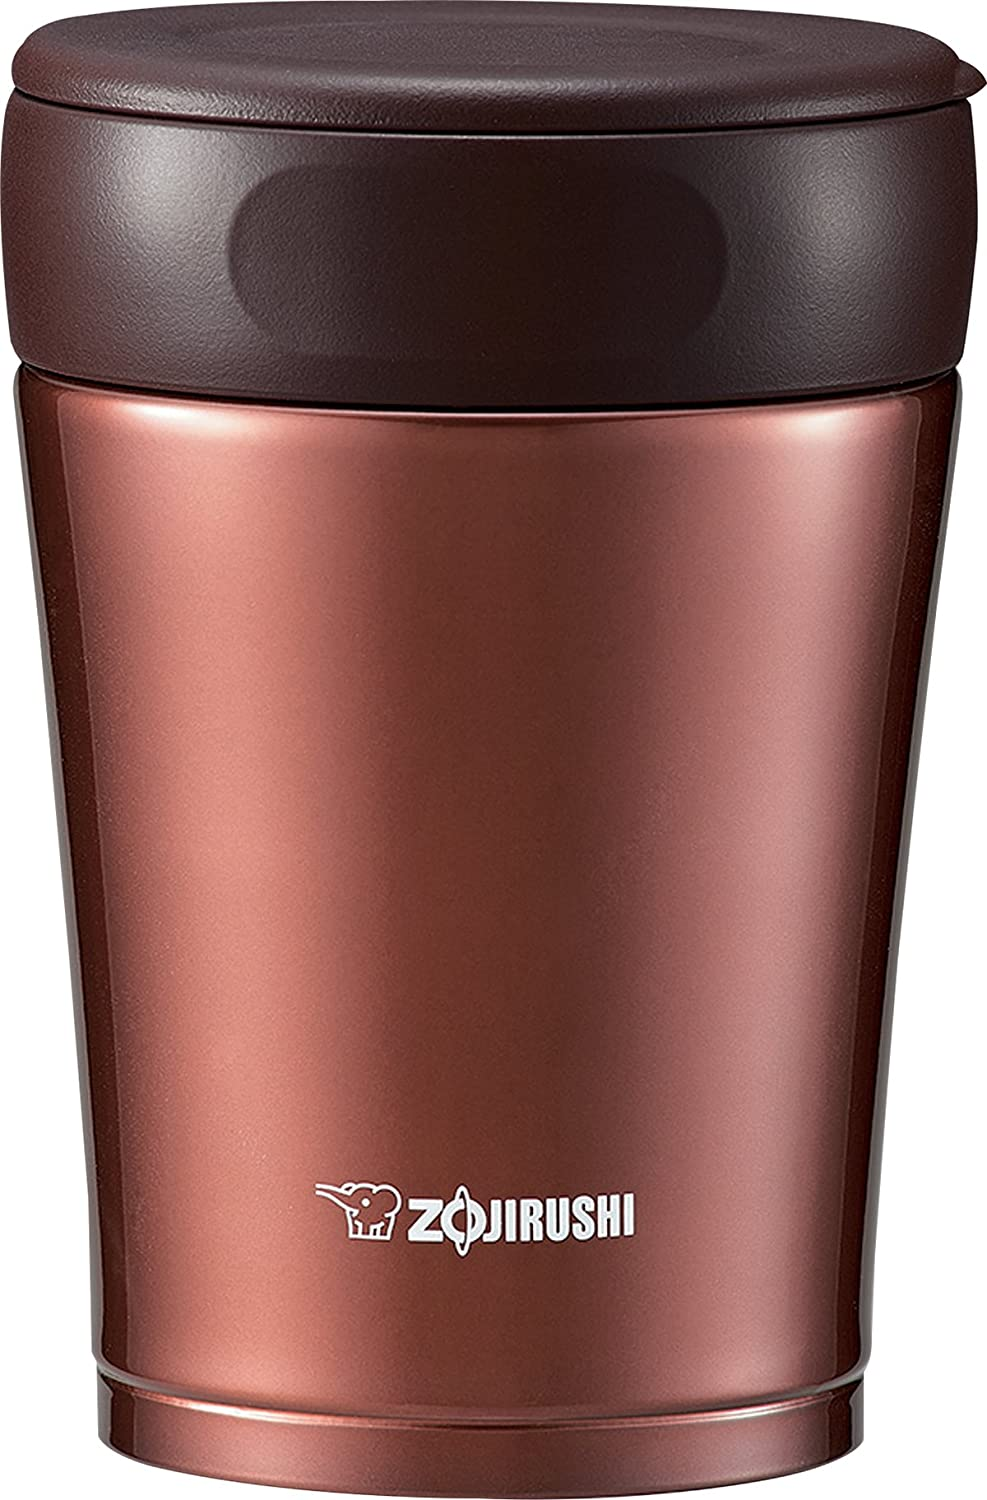 Zojirushi Stainless Steel Food Jar, Cherry Red SW-GCE36RA